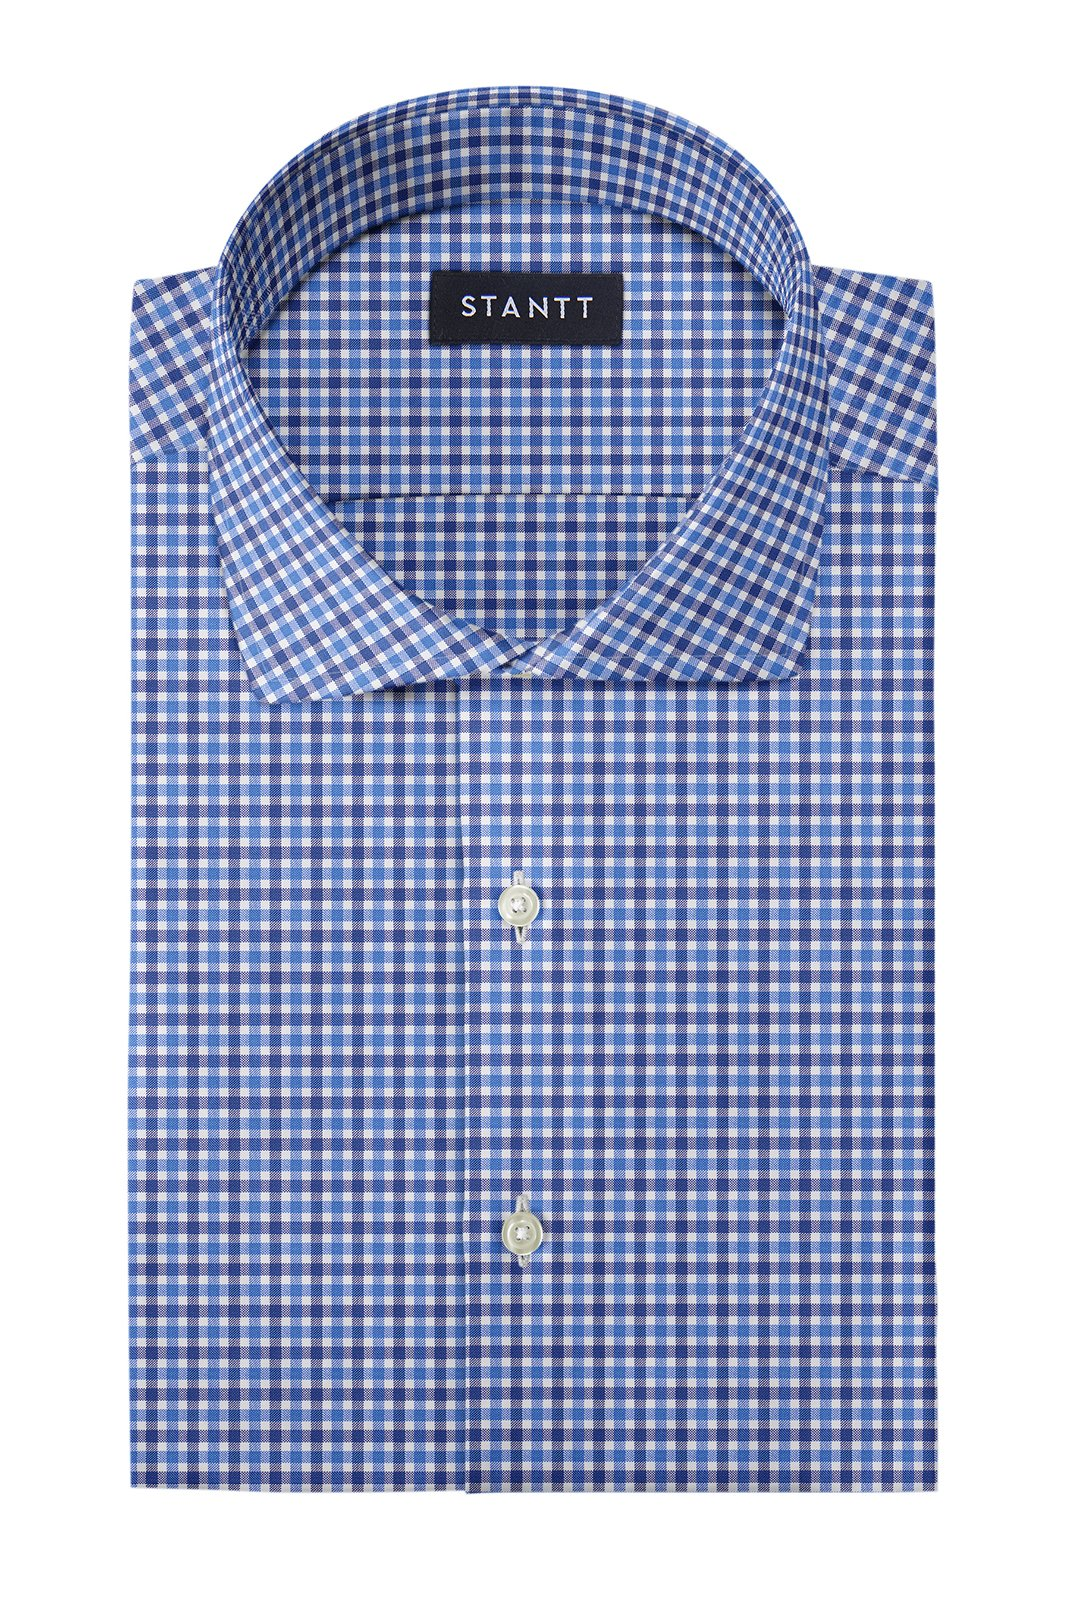 Blue and Navy Club Check Oxford: Cutaway Collar, Barrel Cuff